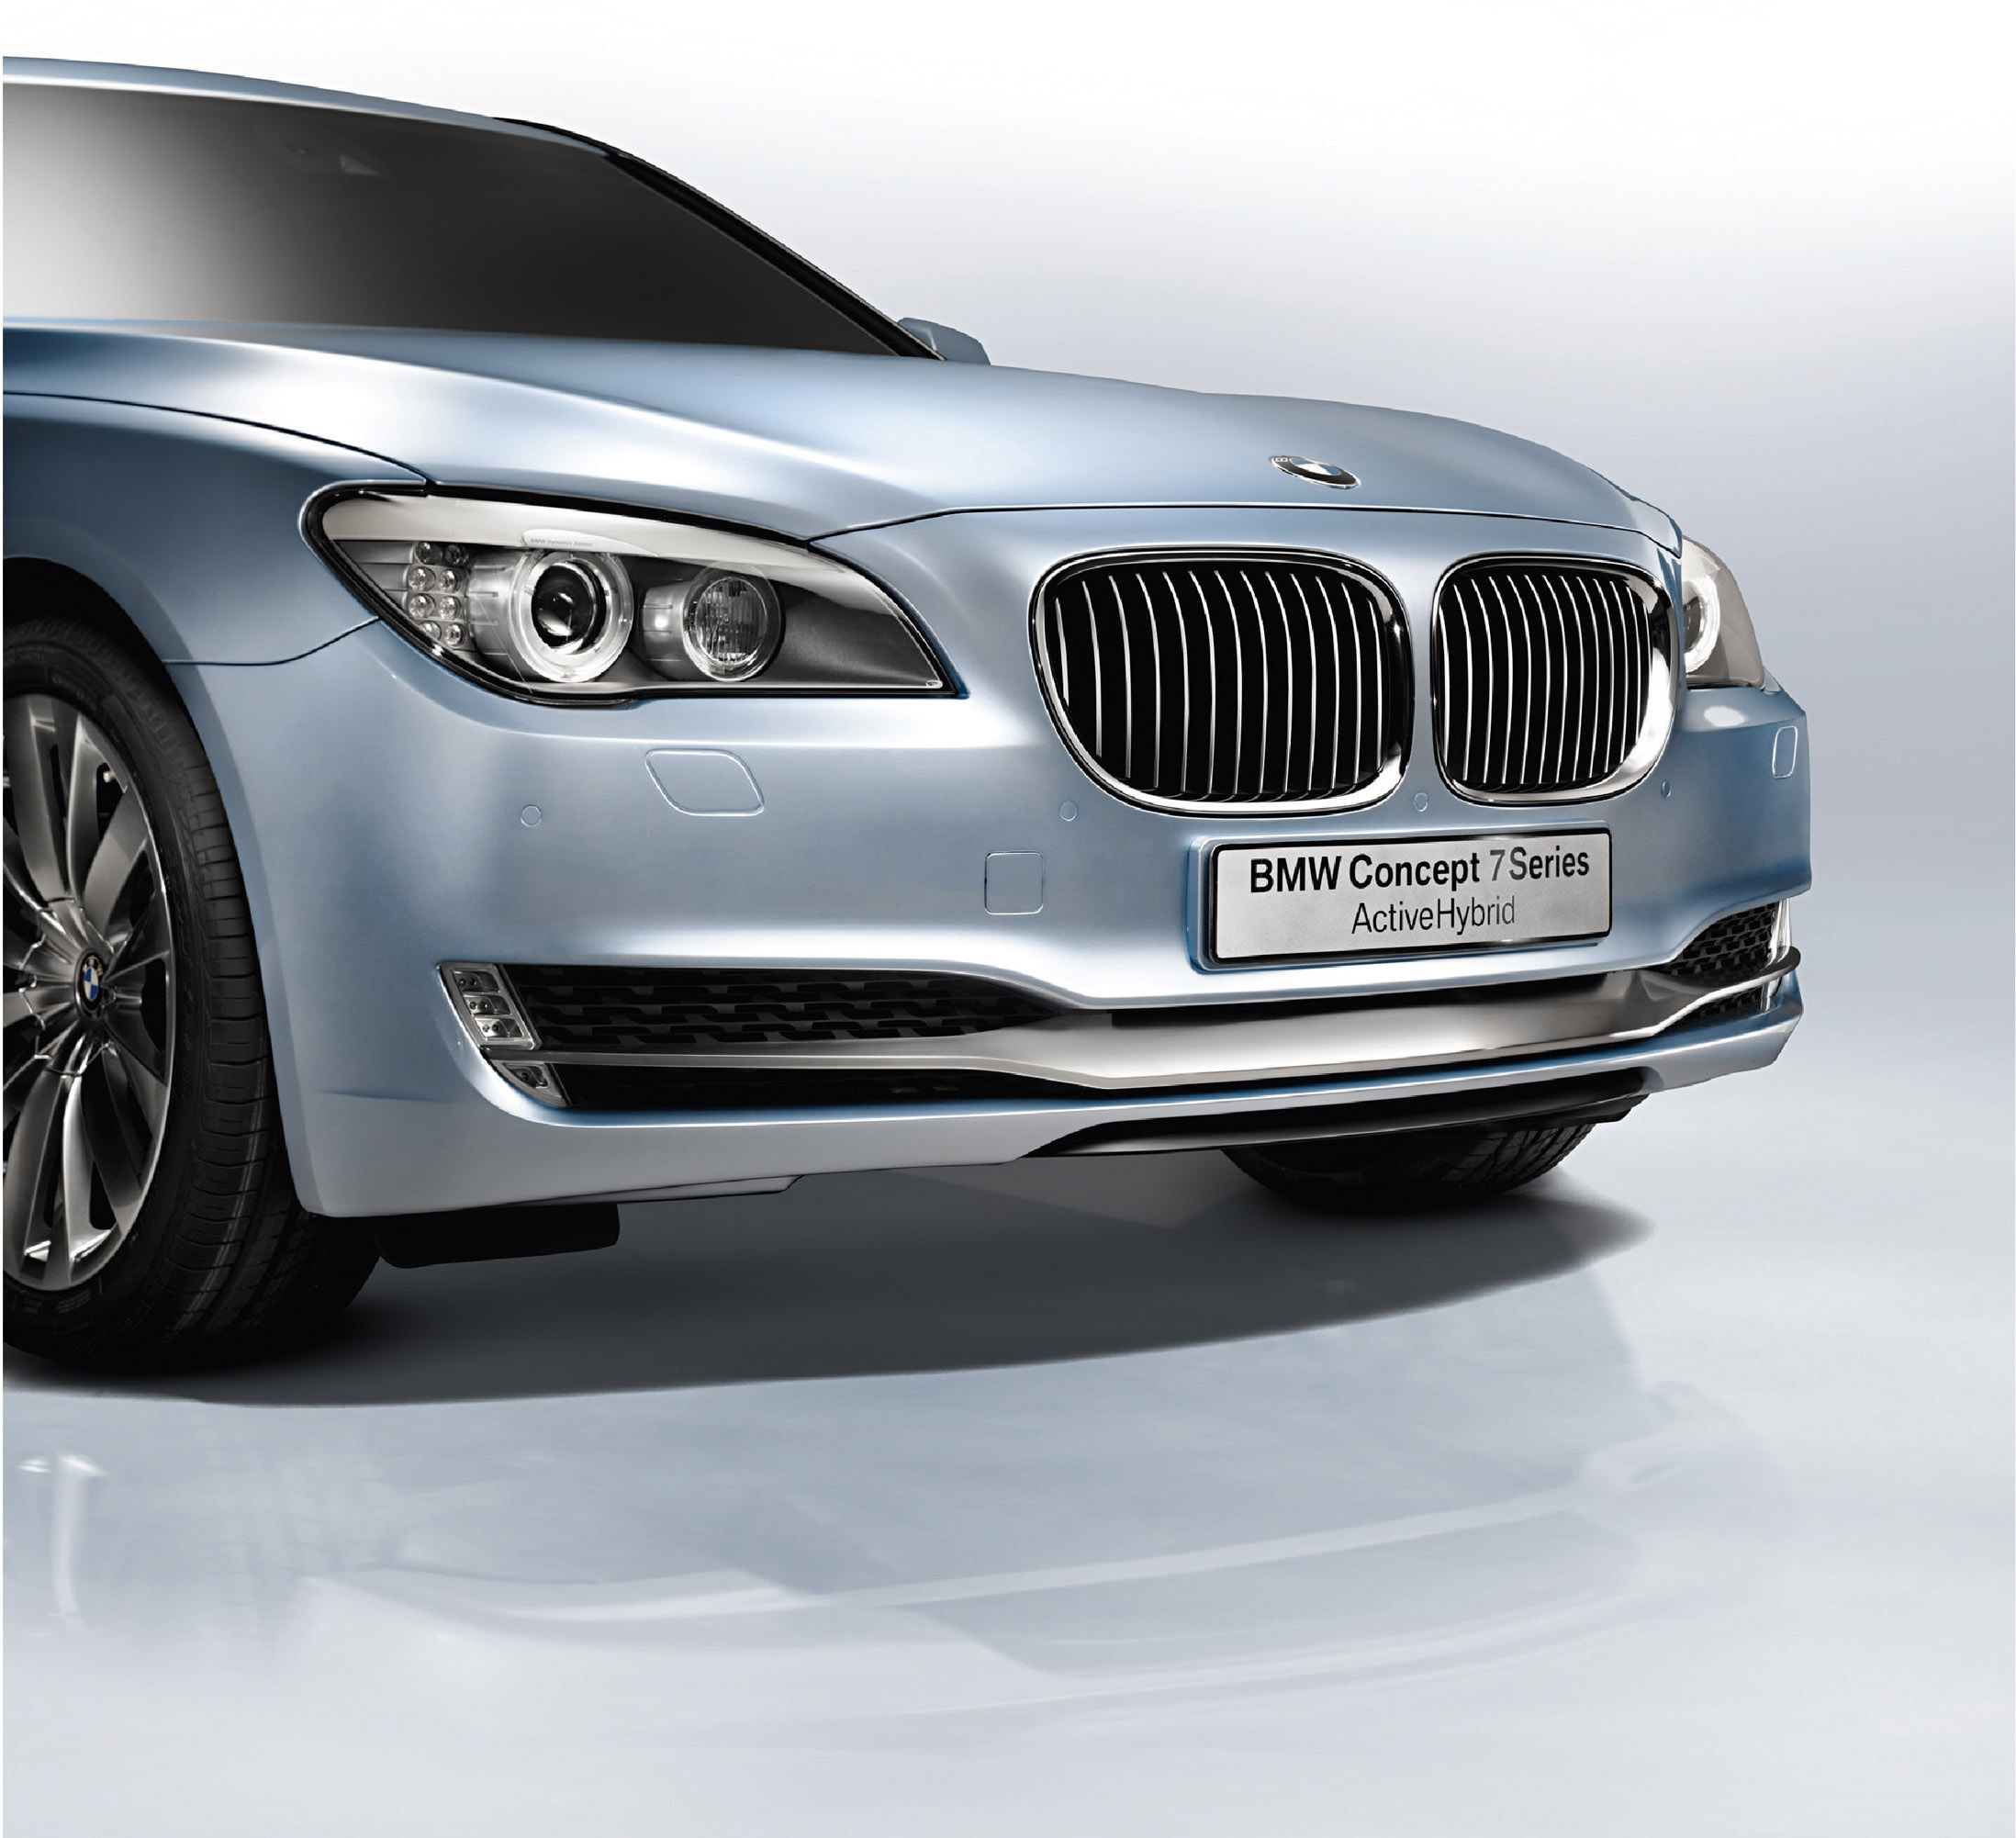 Index of /img/bmw-concept-7-series-activehybrid